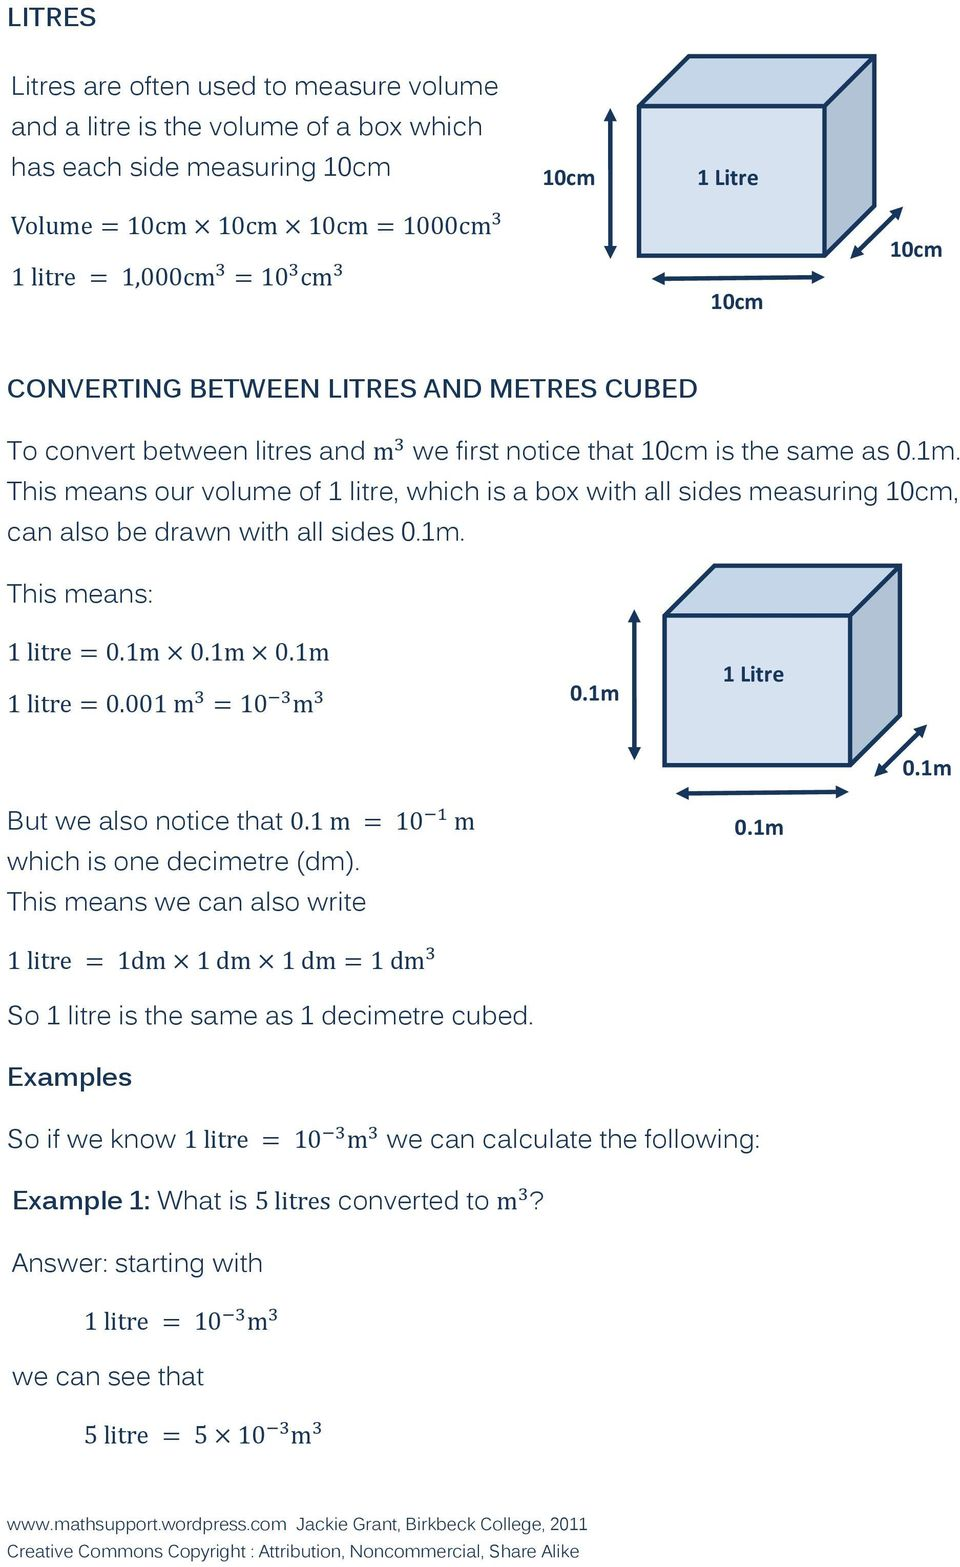 This means our volume of 1 litre, which is a box with all sides measuring 10cm, can also be drawn with all sides 0.1m. This means: 0.1m 1 Litre 0.